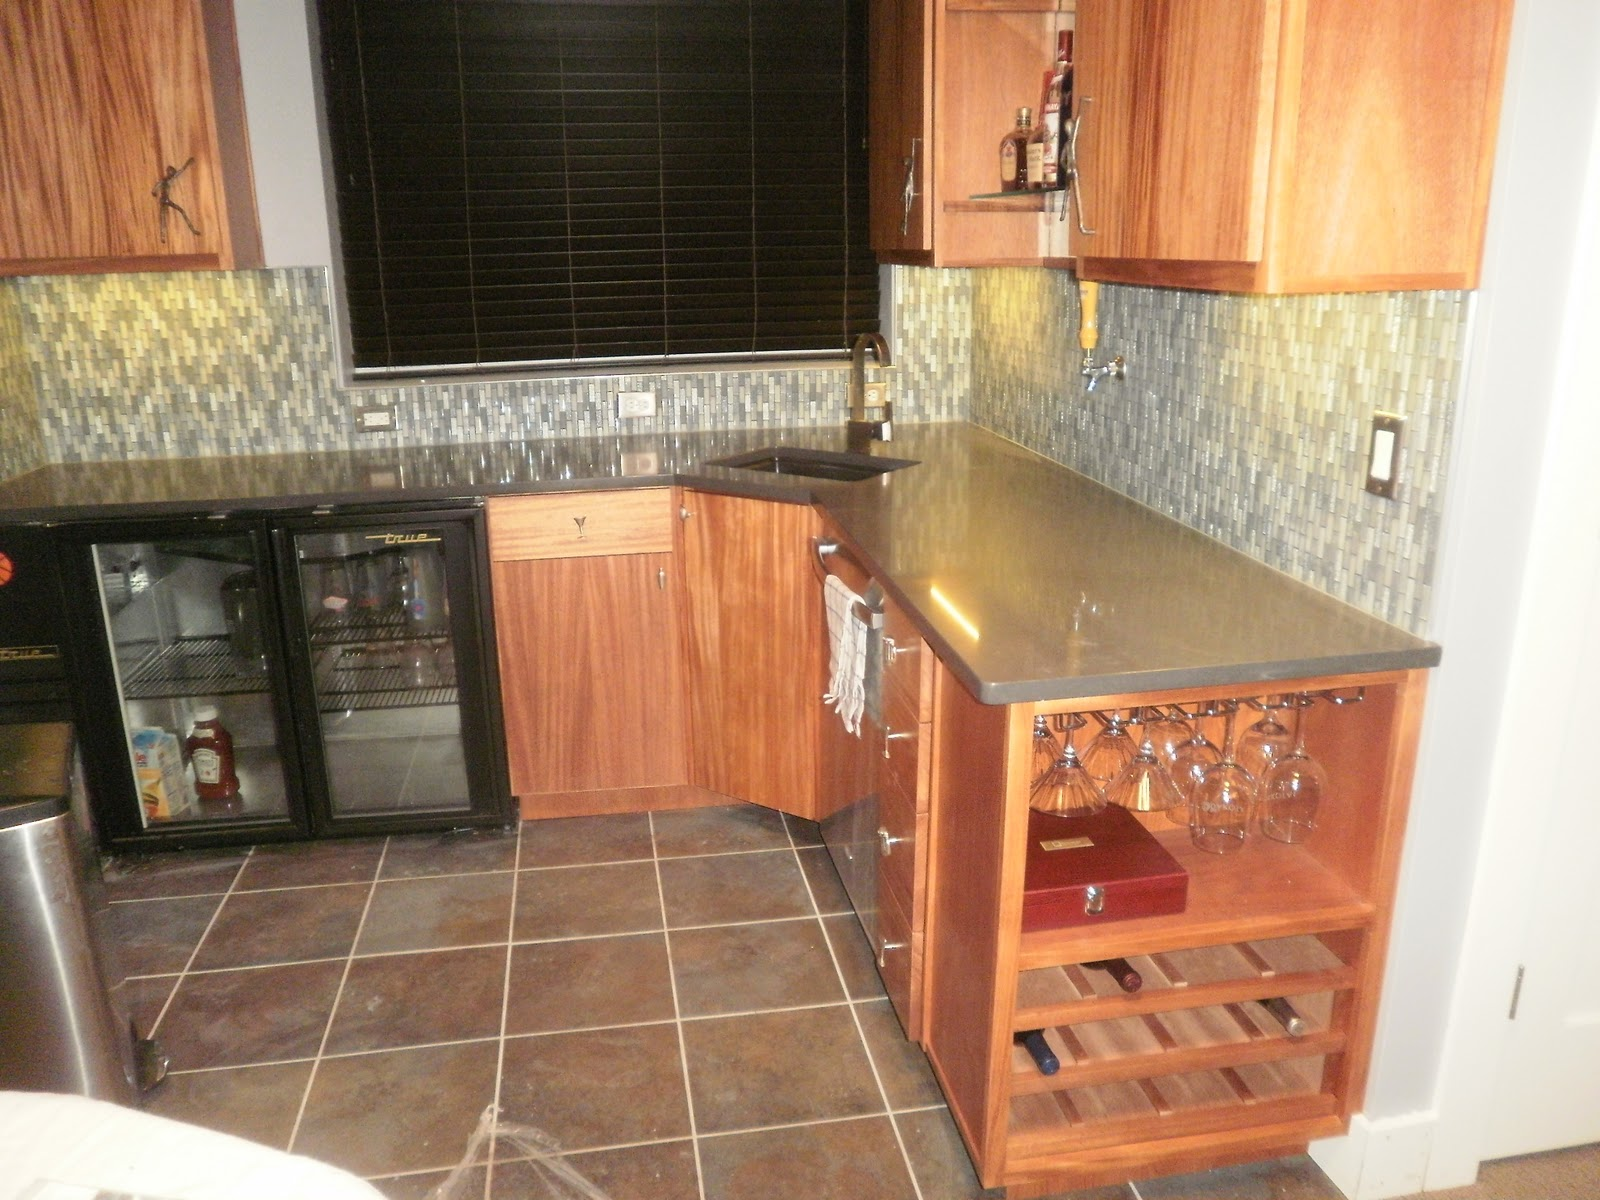 Integrity installations a division of front for Man cave kitchen ideas